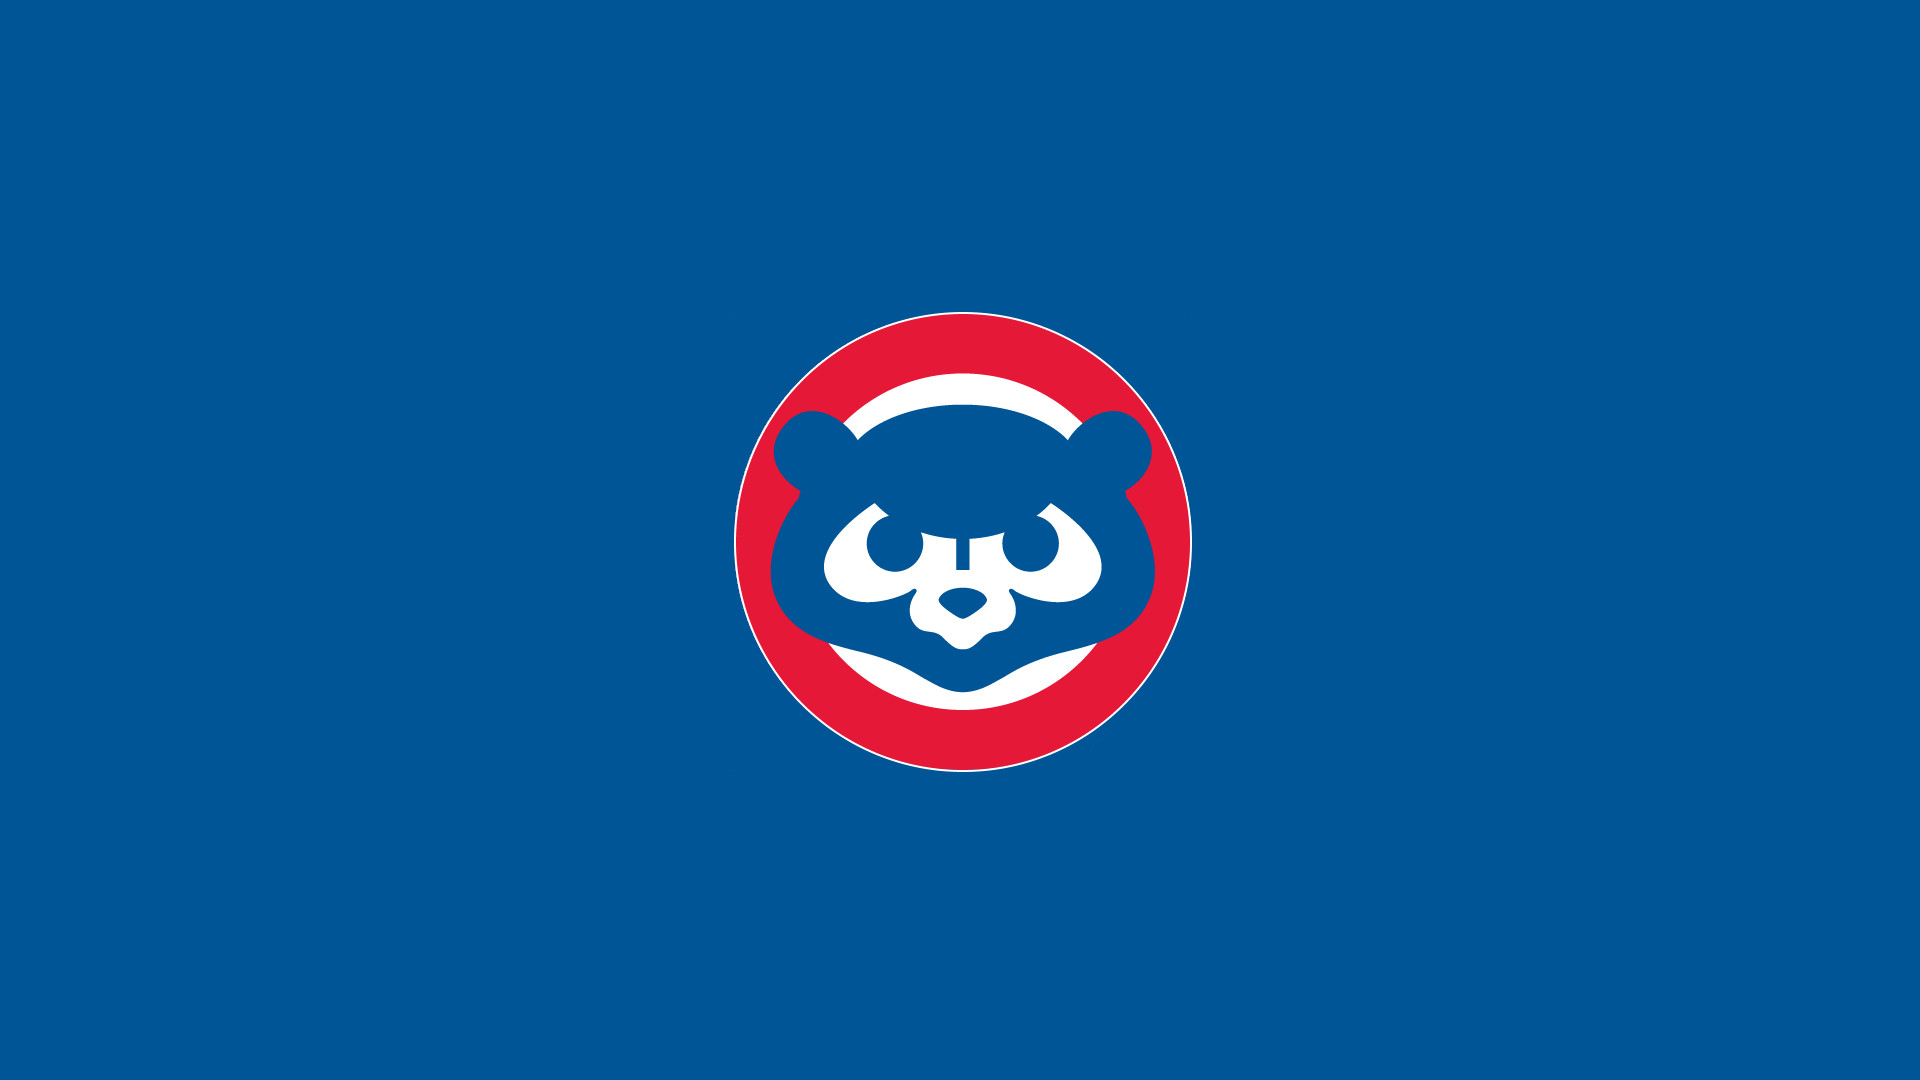 NMgnCP: Chicago Cubs IPhone, by Erlene Tarr